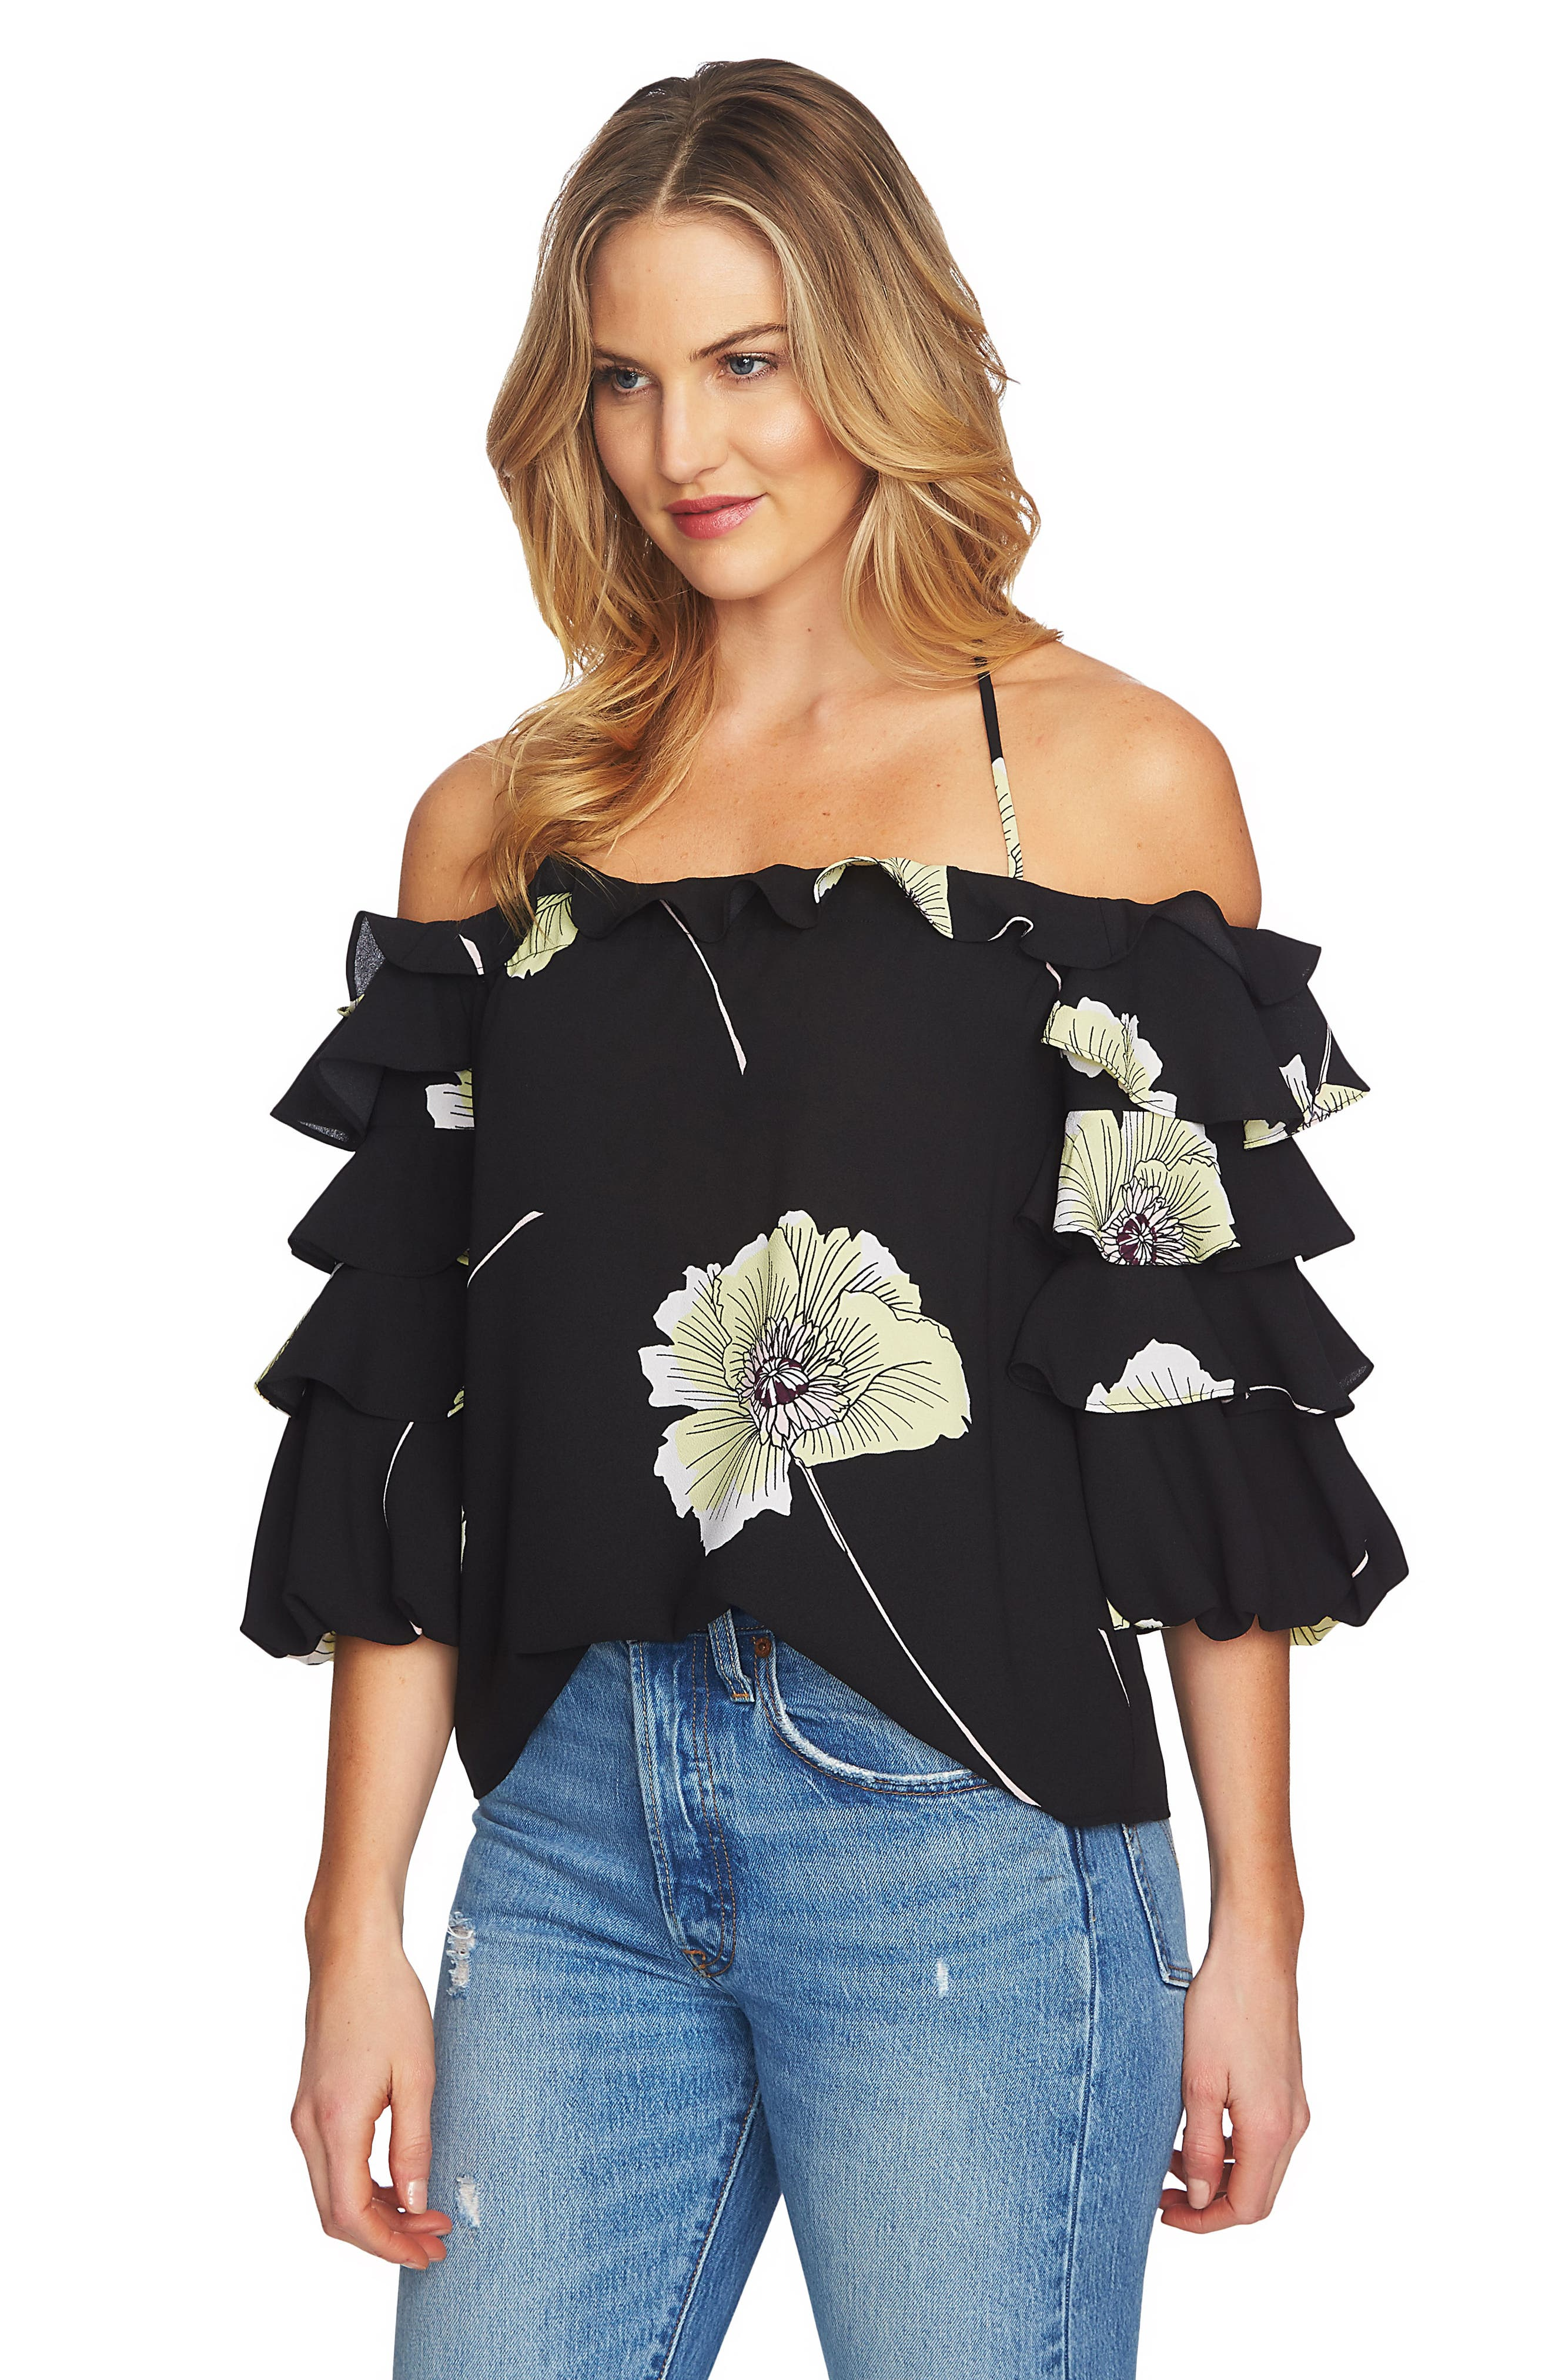 Tiered Sleeve Off the Shoulder Top,                             Alternate thumbnail 3, color,                             060-Rich Black